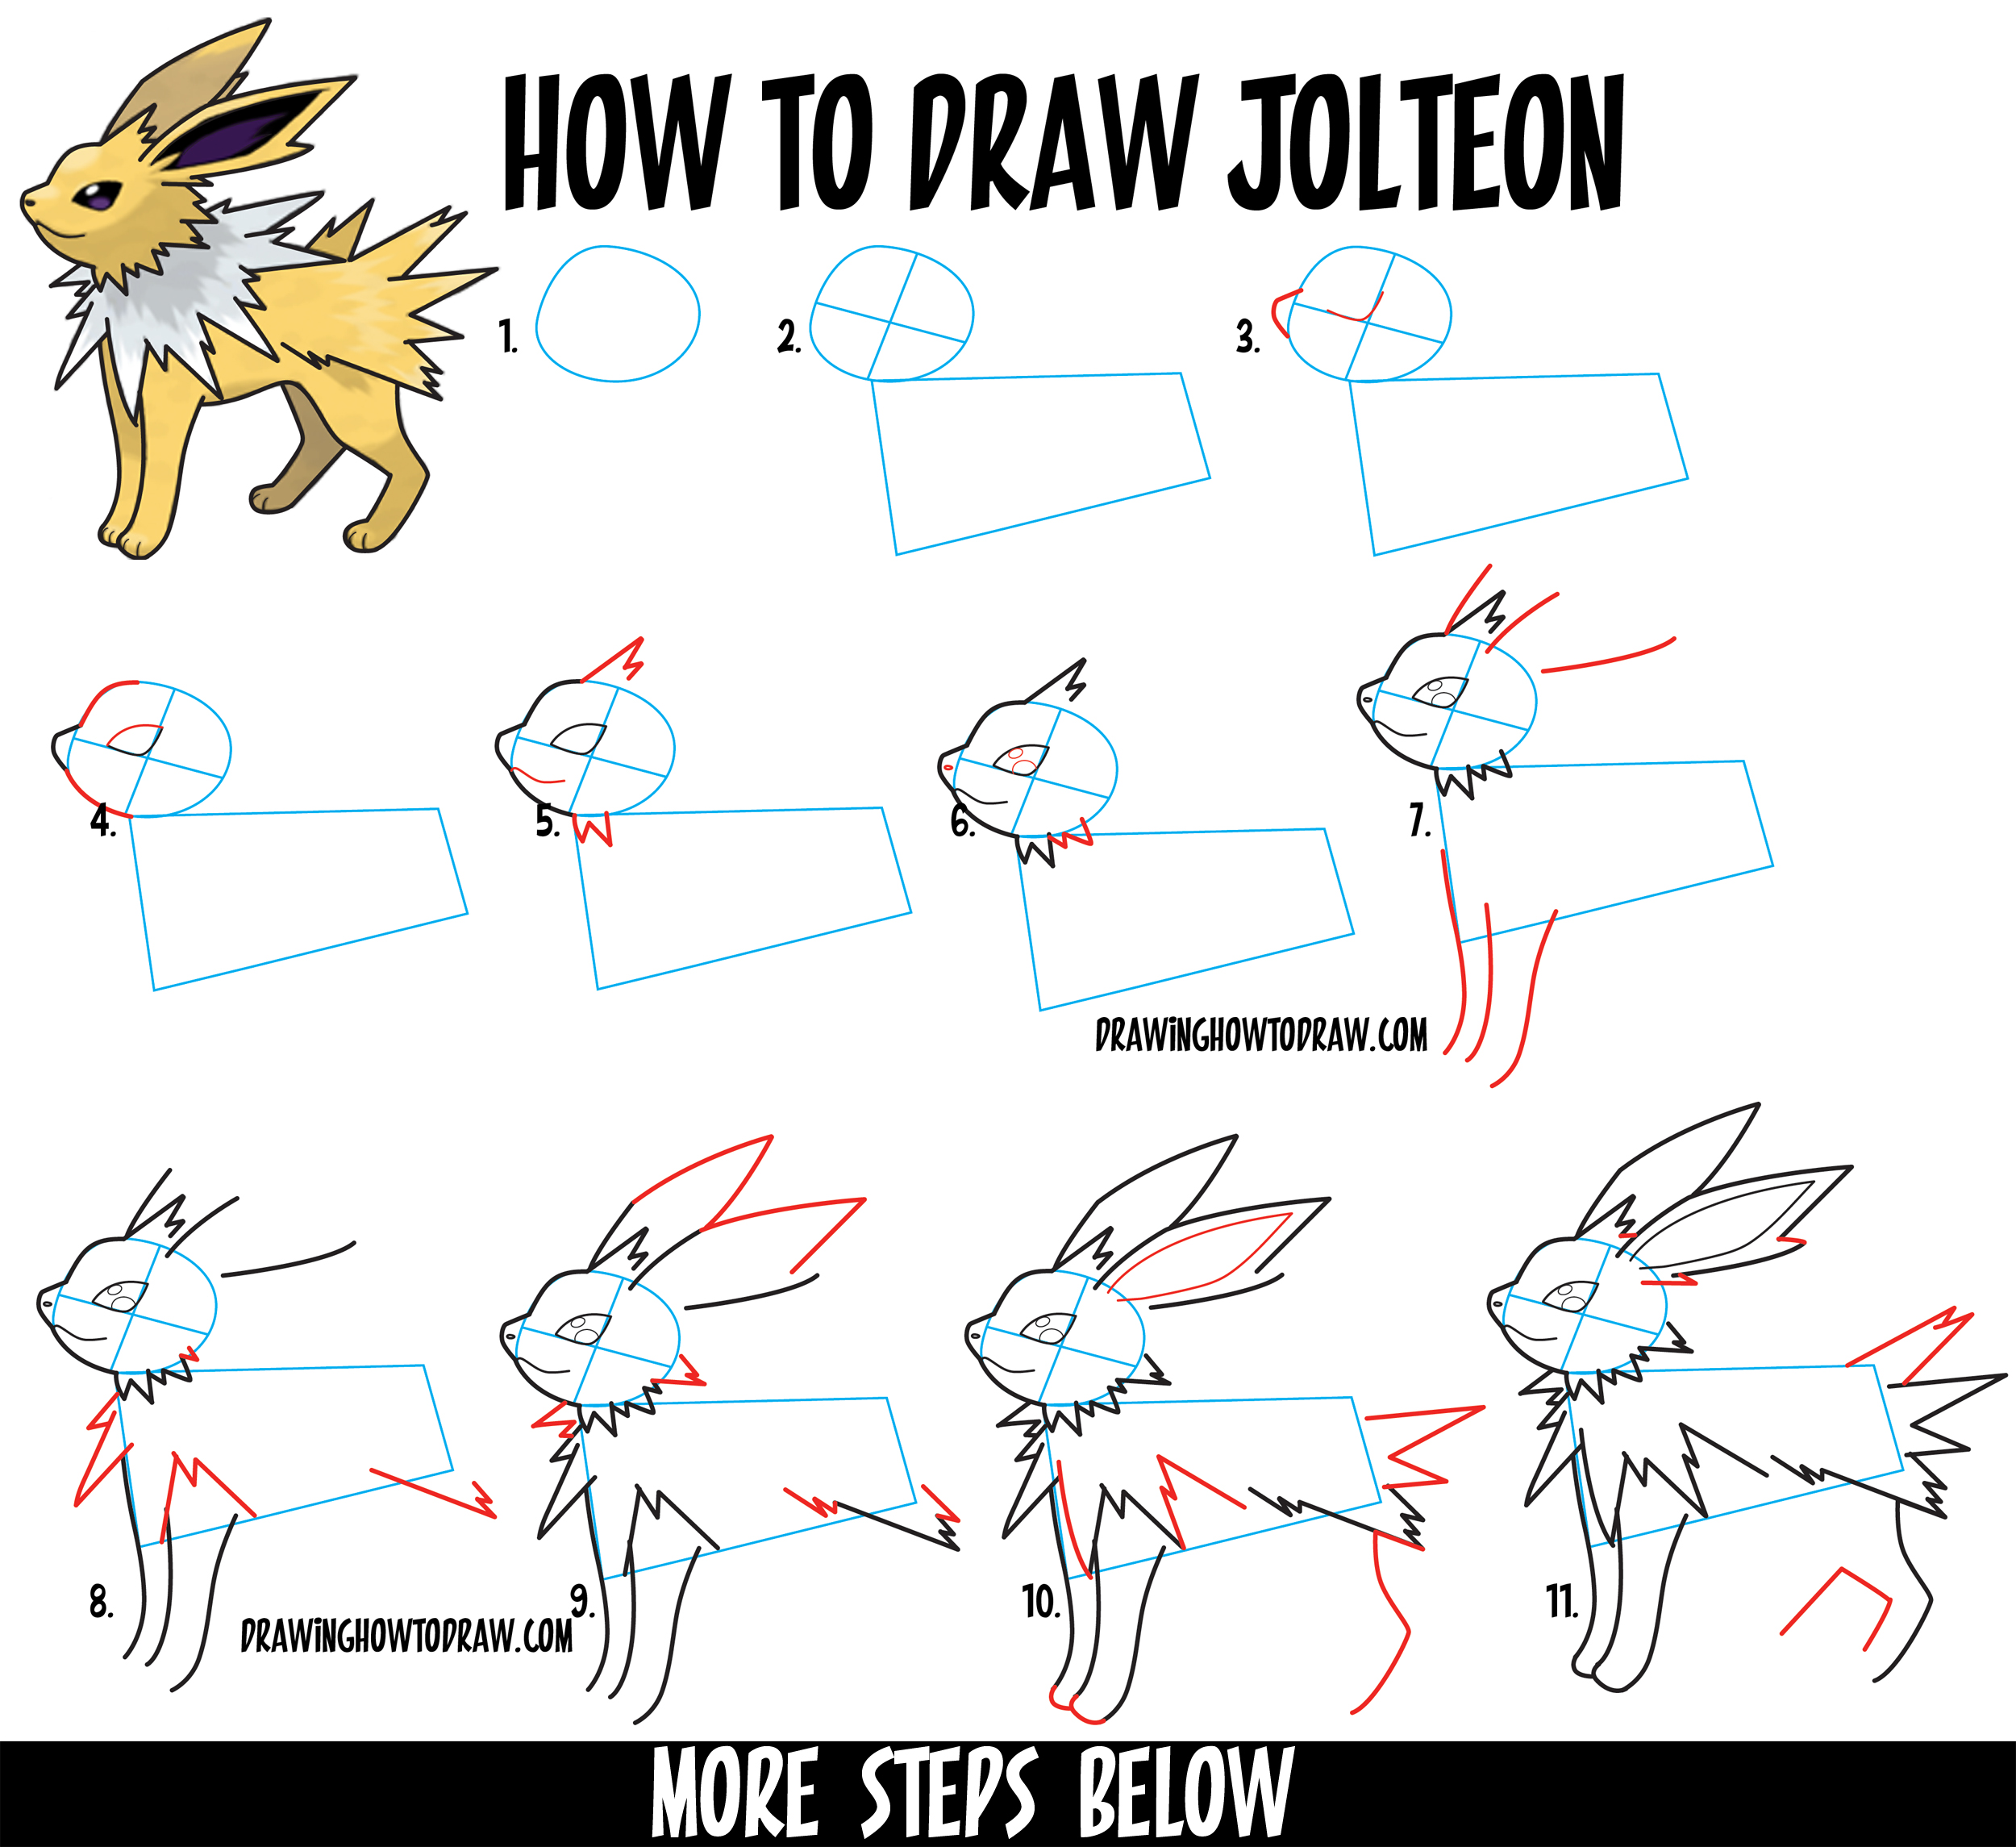 jolteon pokemon drawings images pokemon images